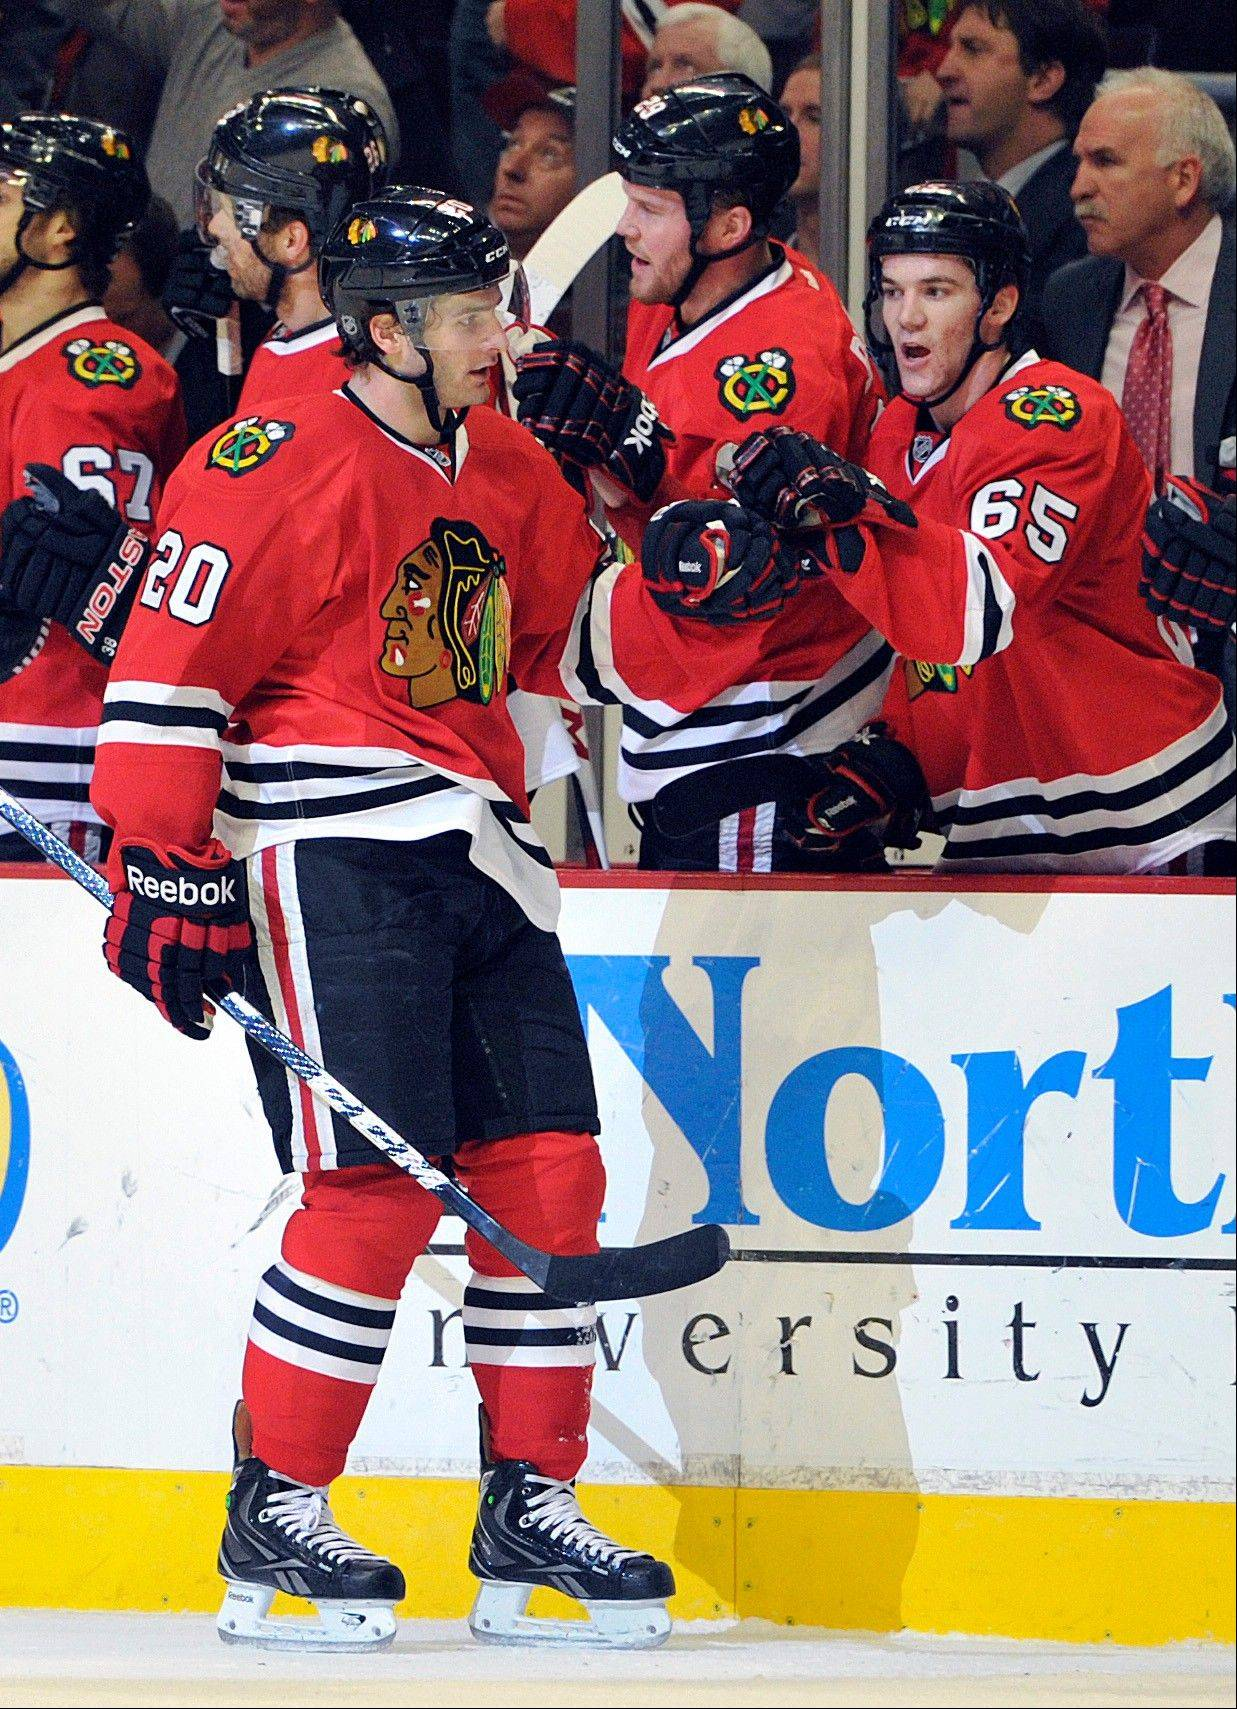 Chicago Blackhawks' Brandon Saad (20) is congratulated by Andrew Shaw after scoring a goal against the Nashville Predators during the first period of an NHL hockey game Friday, April 19, 2013, in Chicago.